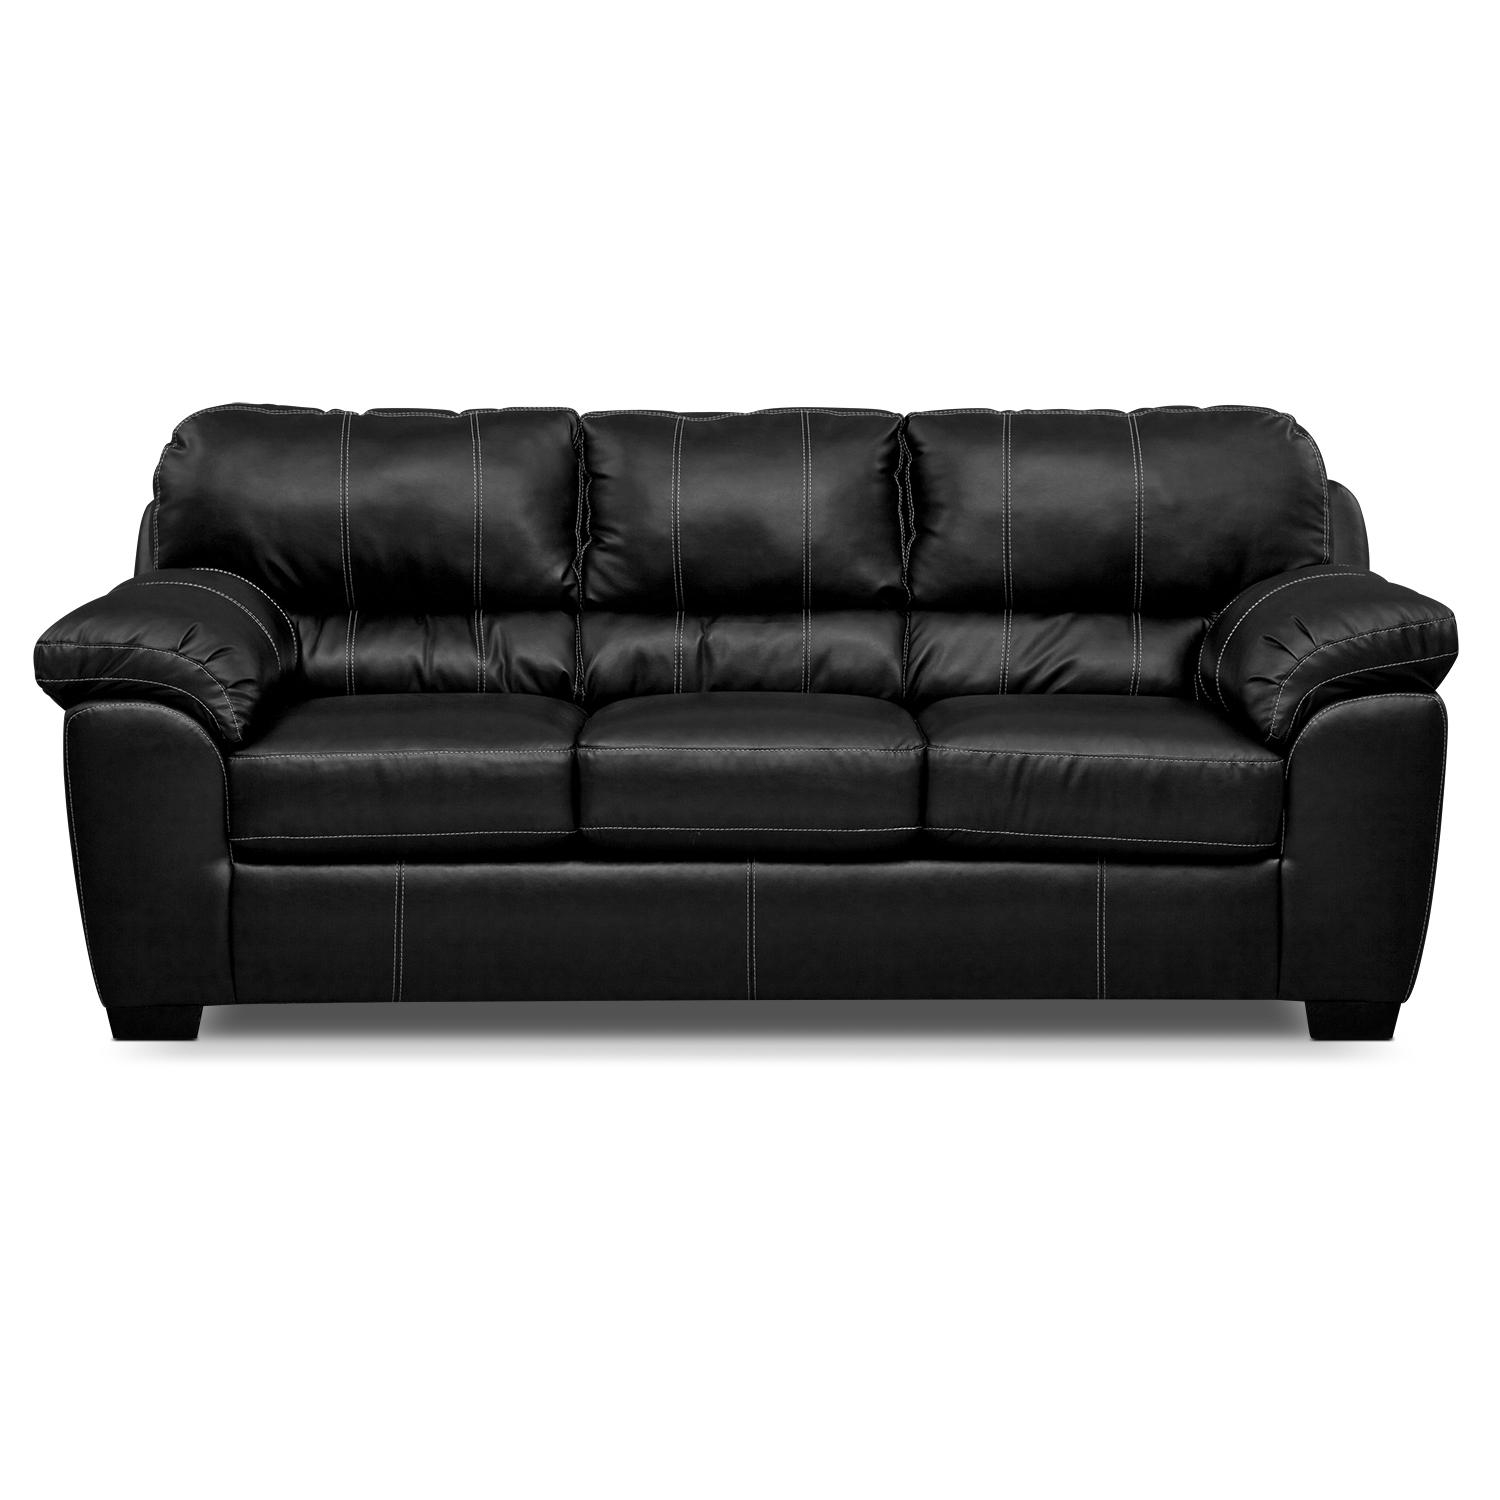 Sofas Center : Faux Leatherleeperofa 87F2517A59Db 1 Mainstays With Faux Leather Sleeper Sofas (Image 18 of 20)